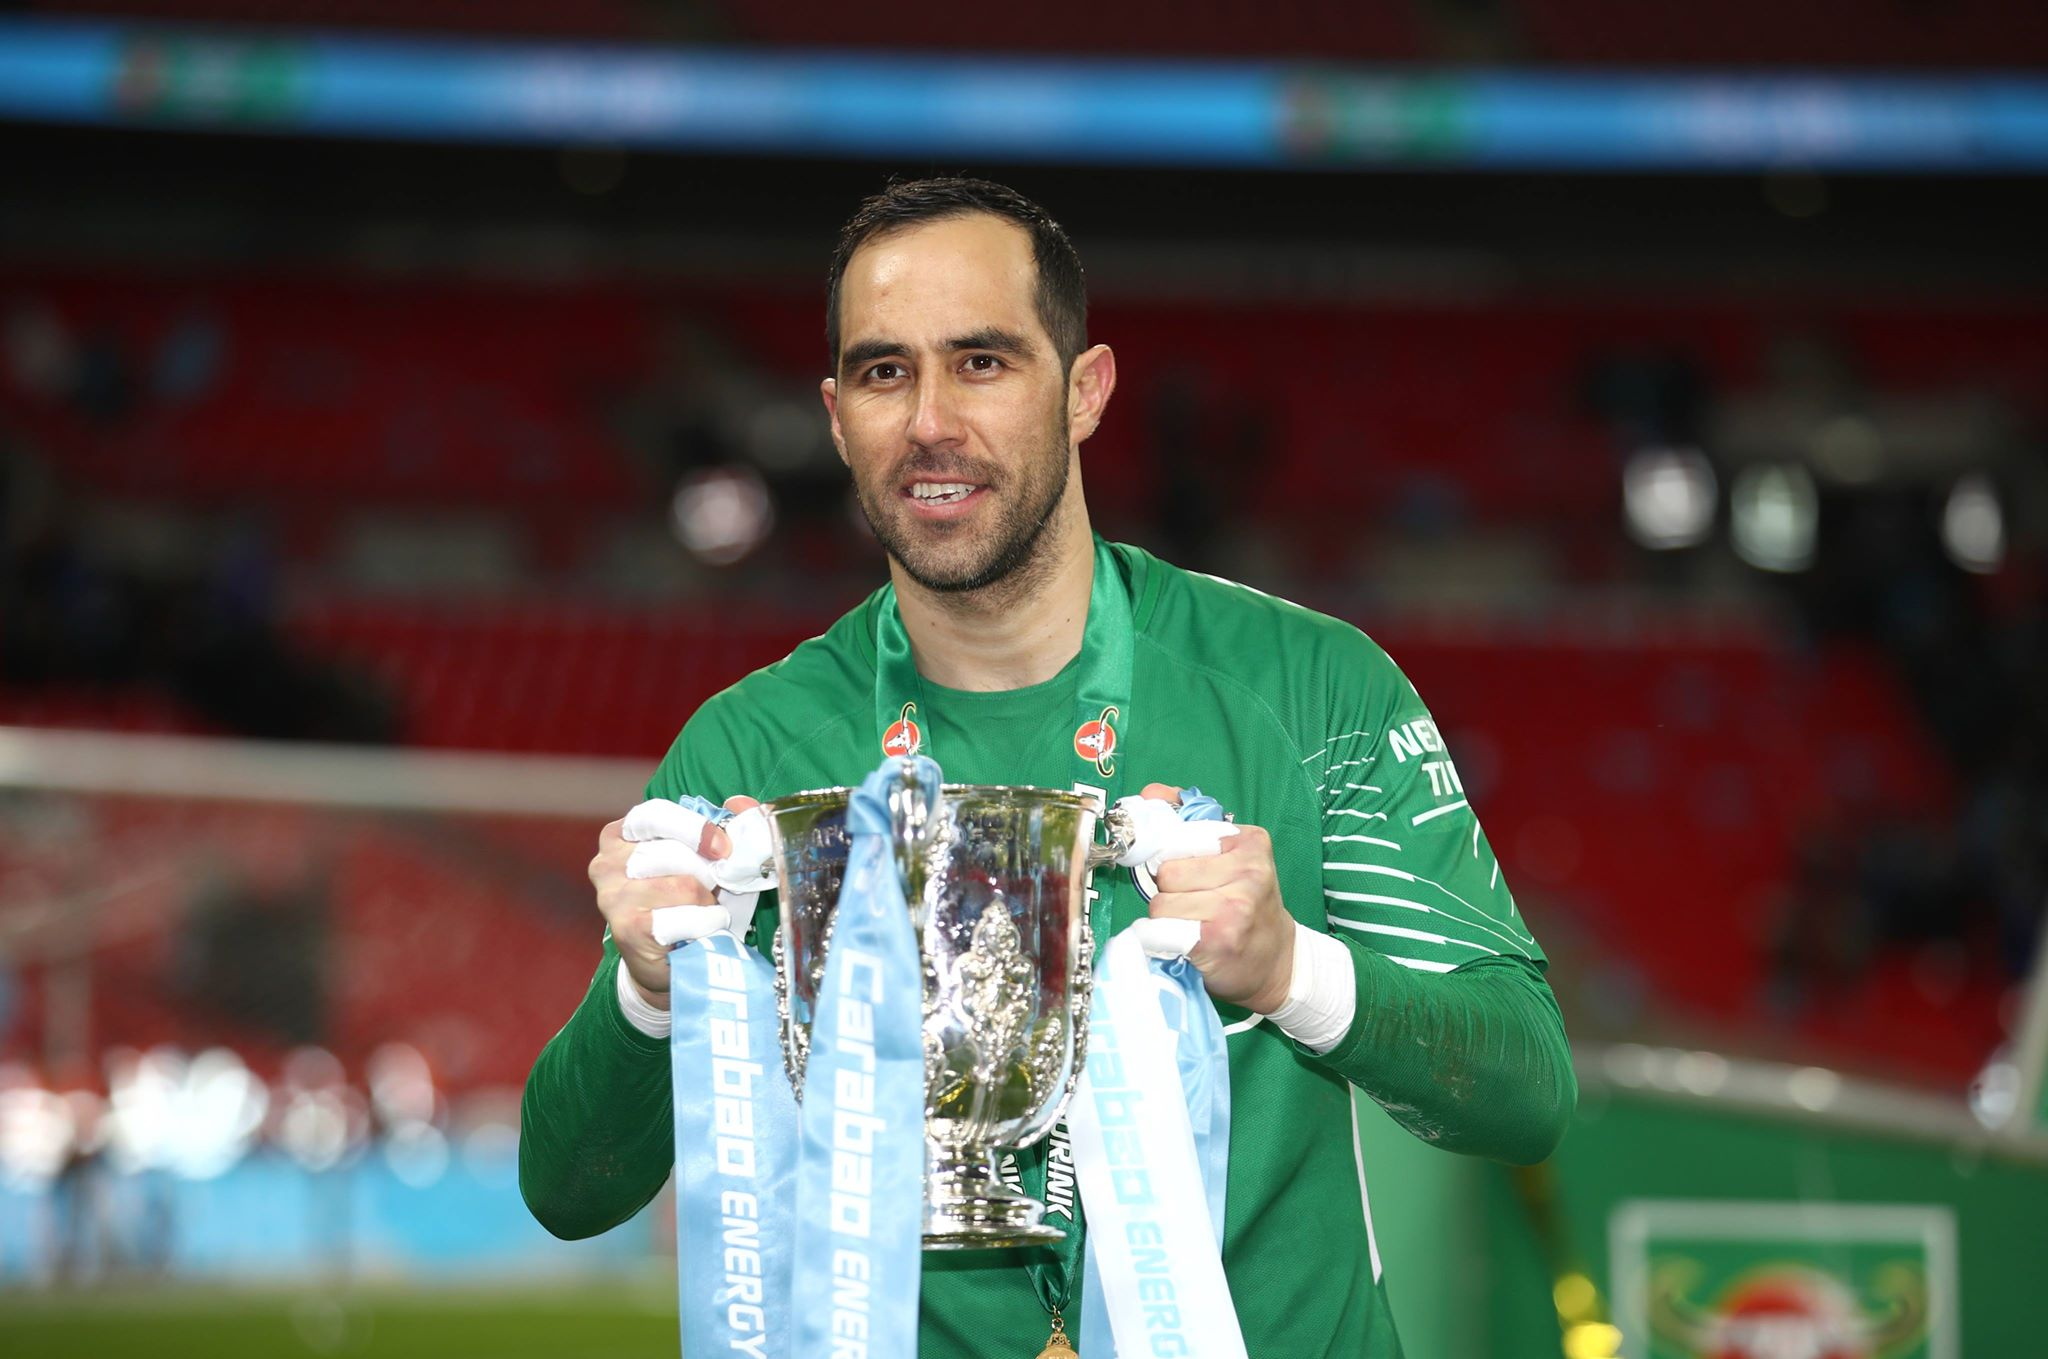 Claudio Bravo: Man City goalkeeper ruptures Achilles tendon